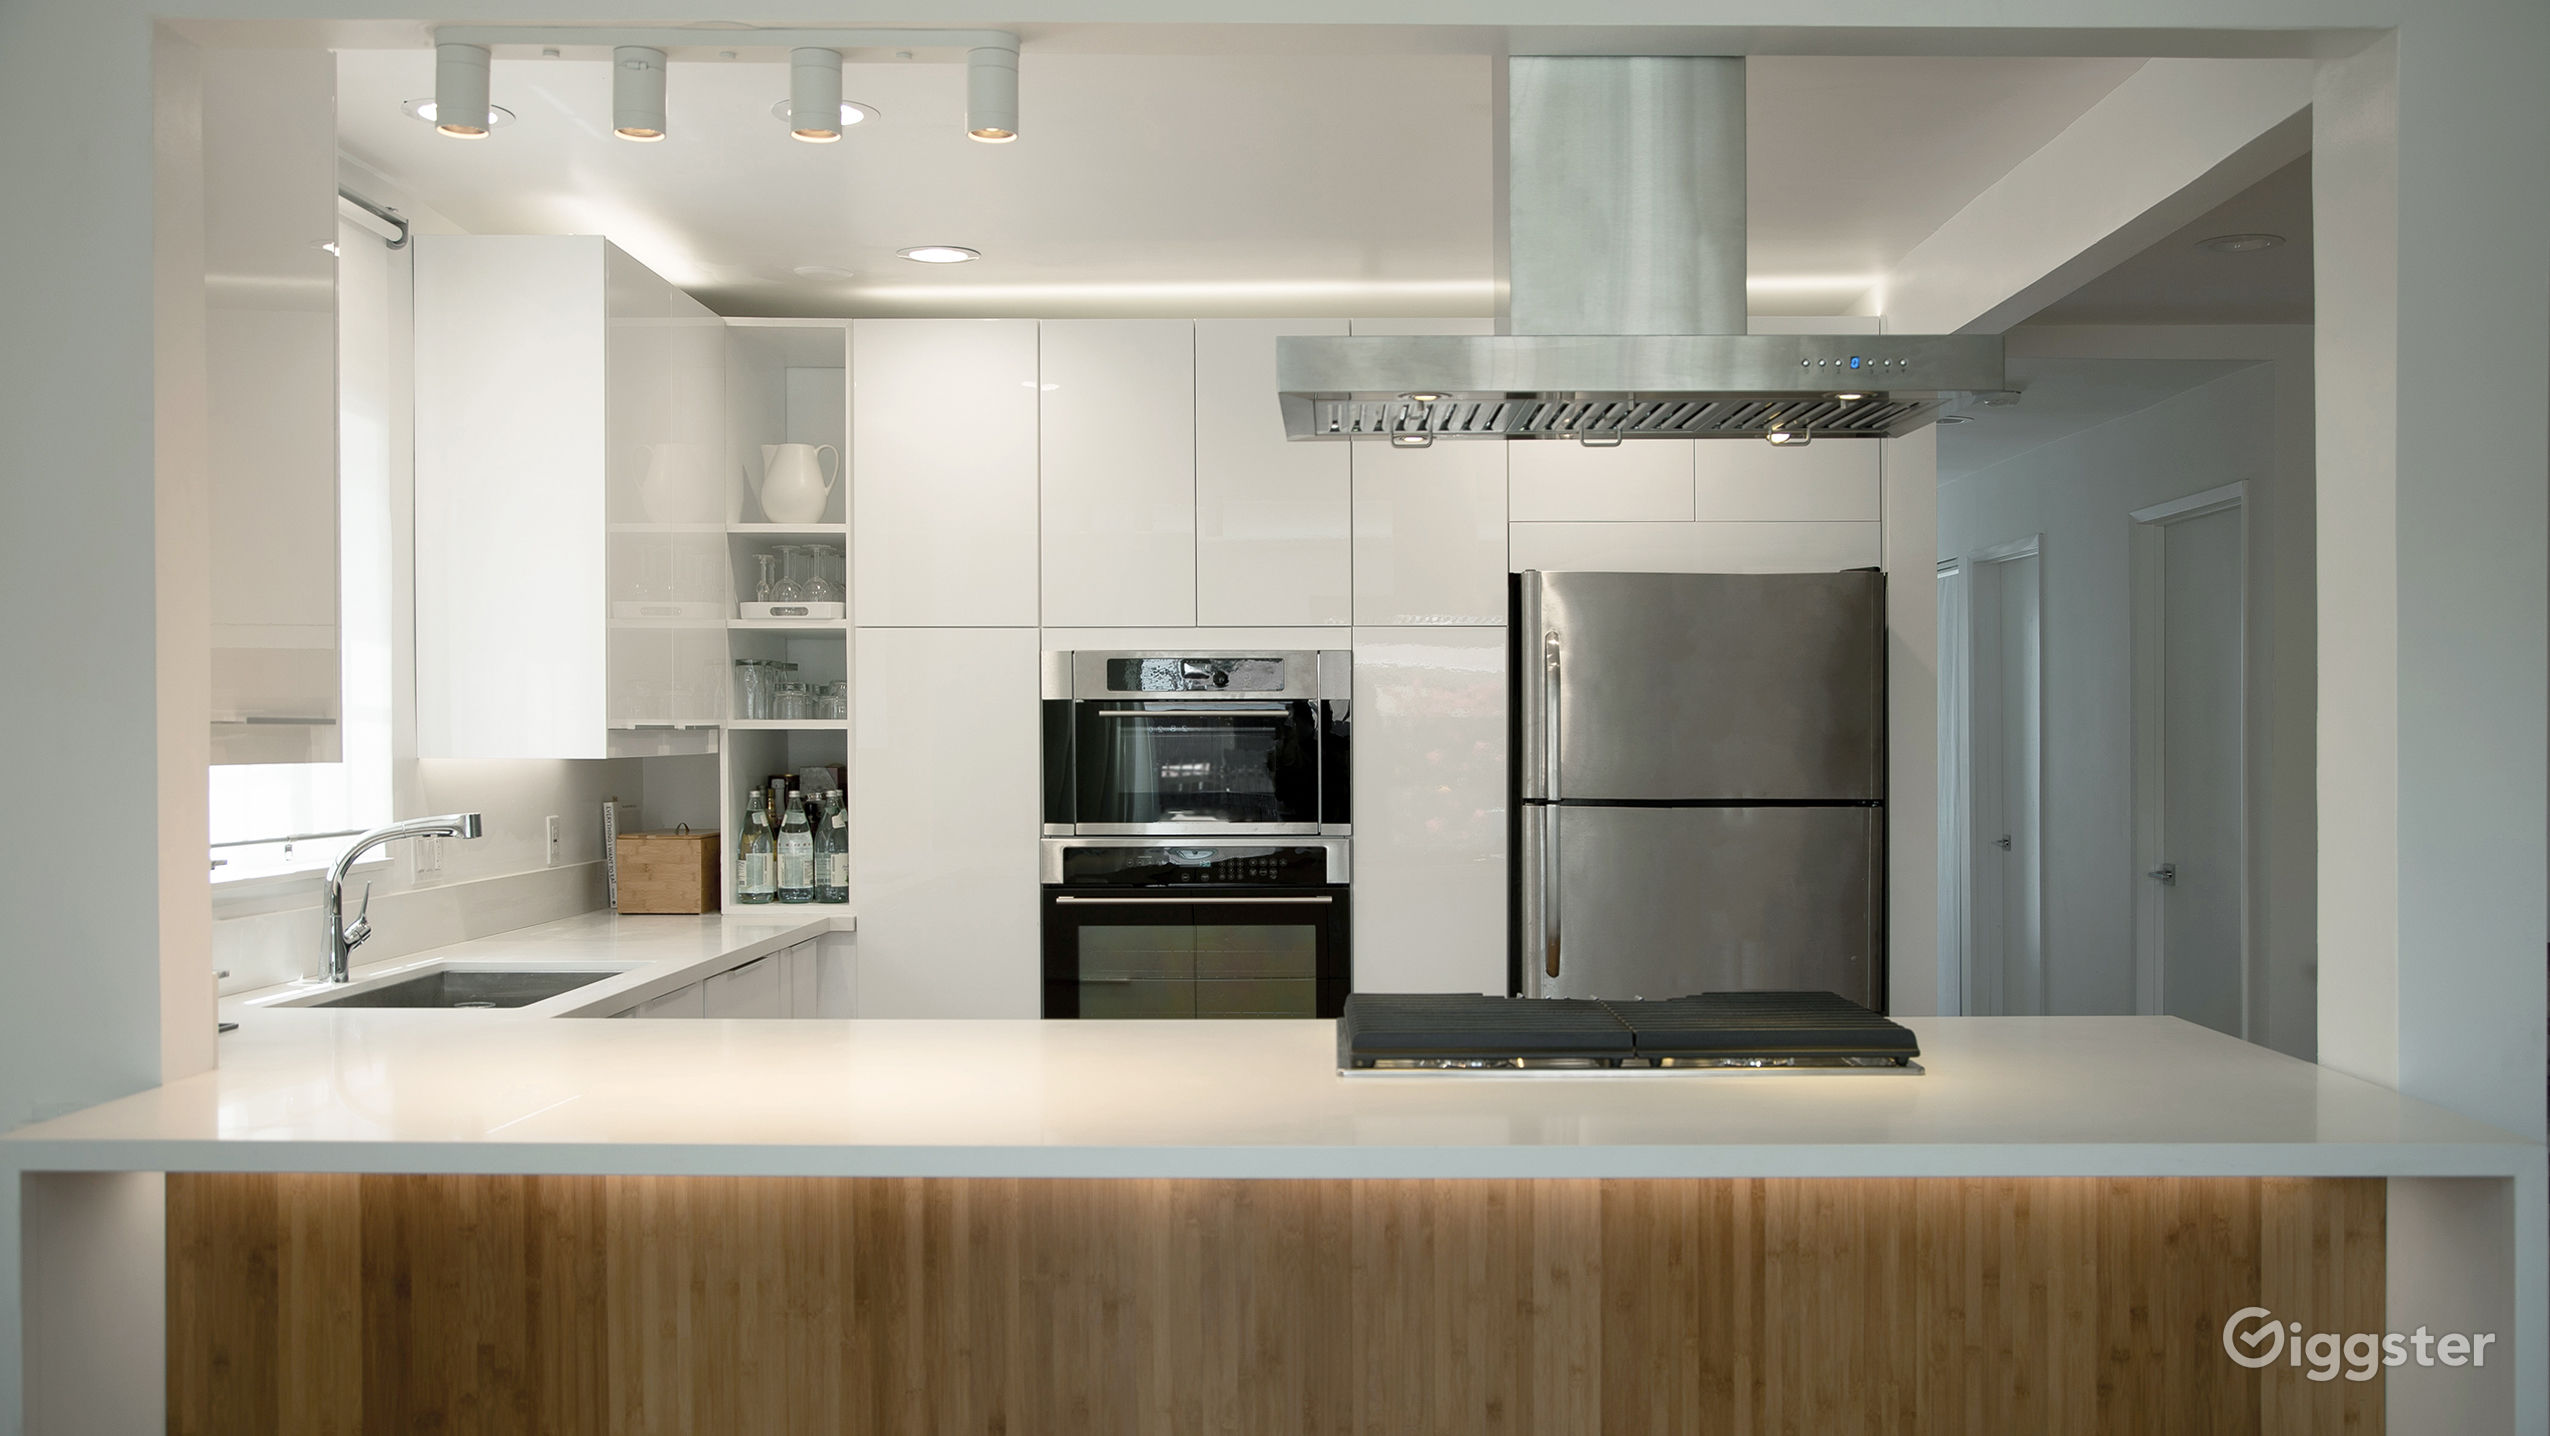 Modern Open Kitchen Living Room And Dining Rent This Location On Giggster